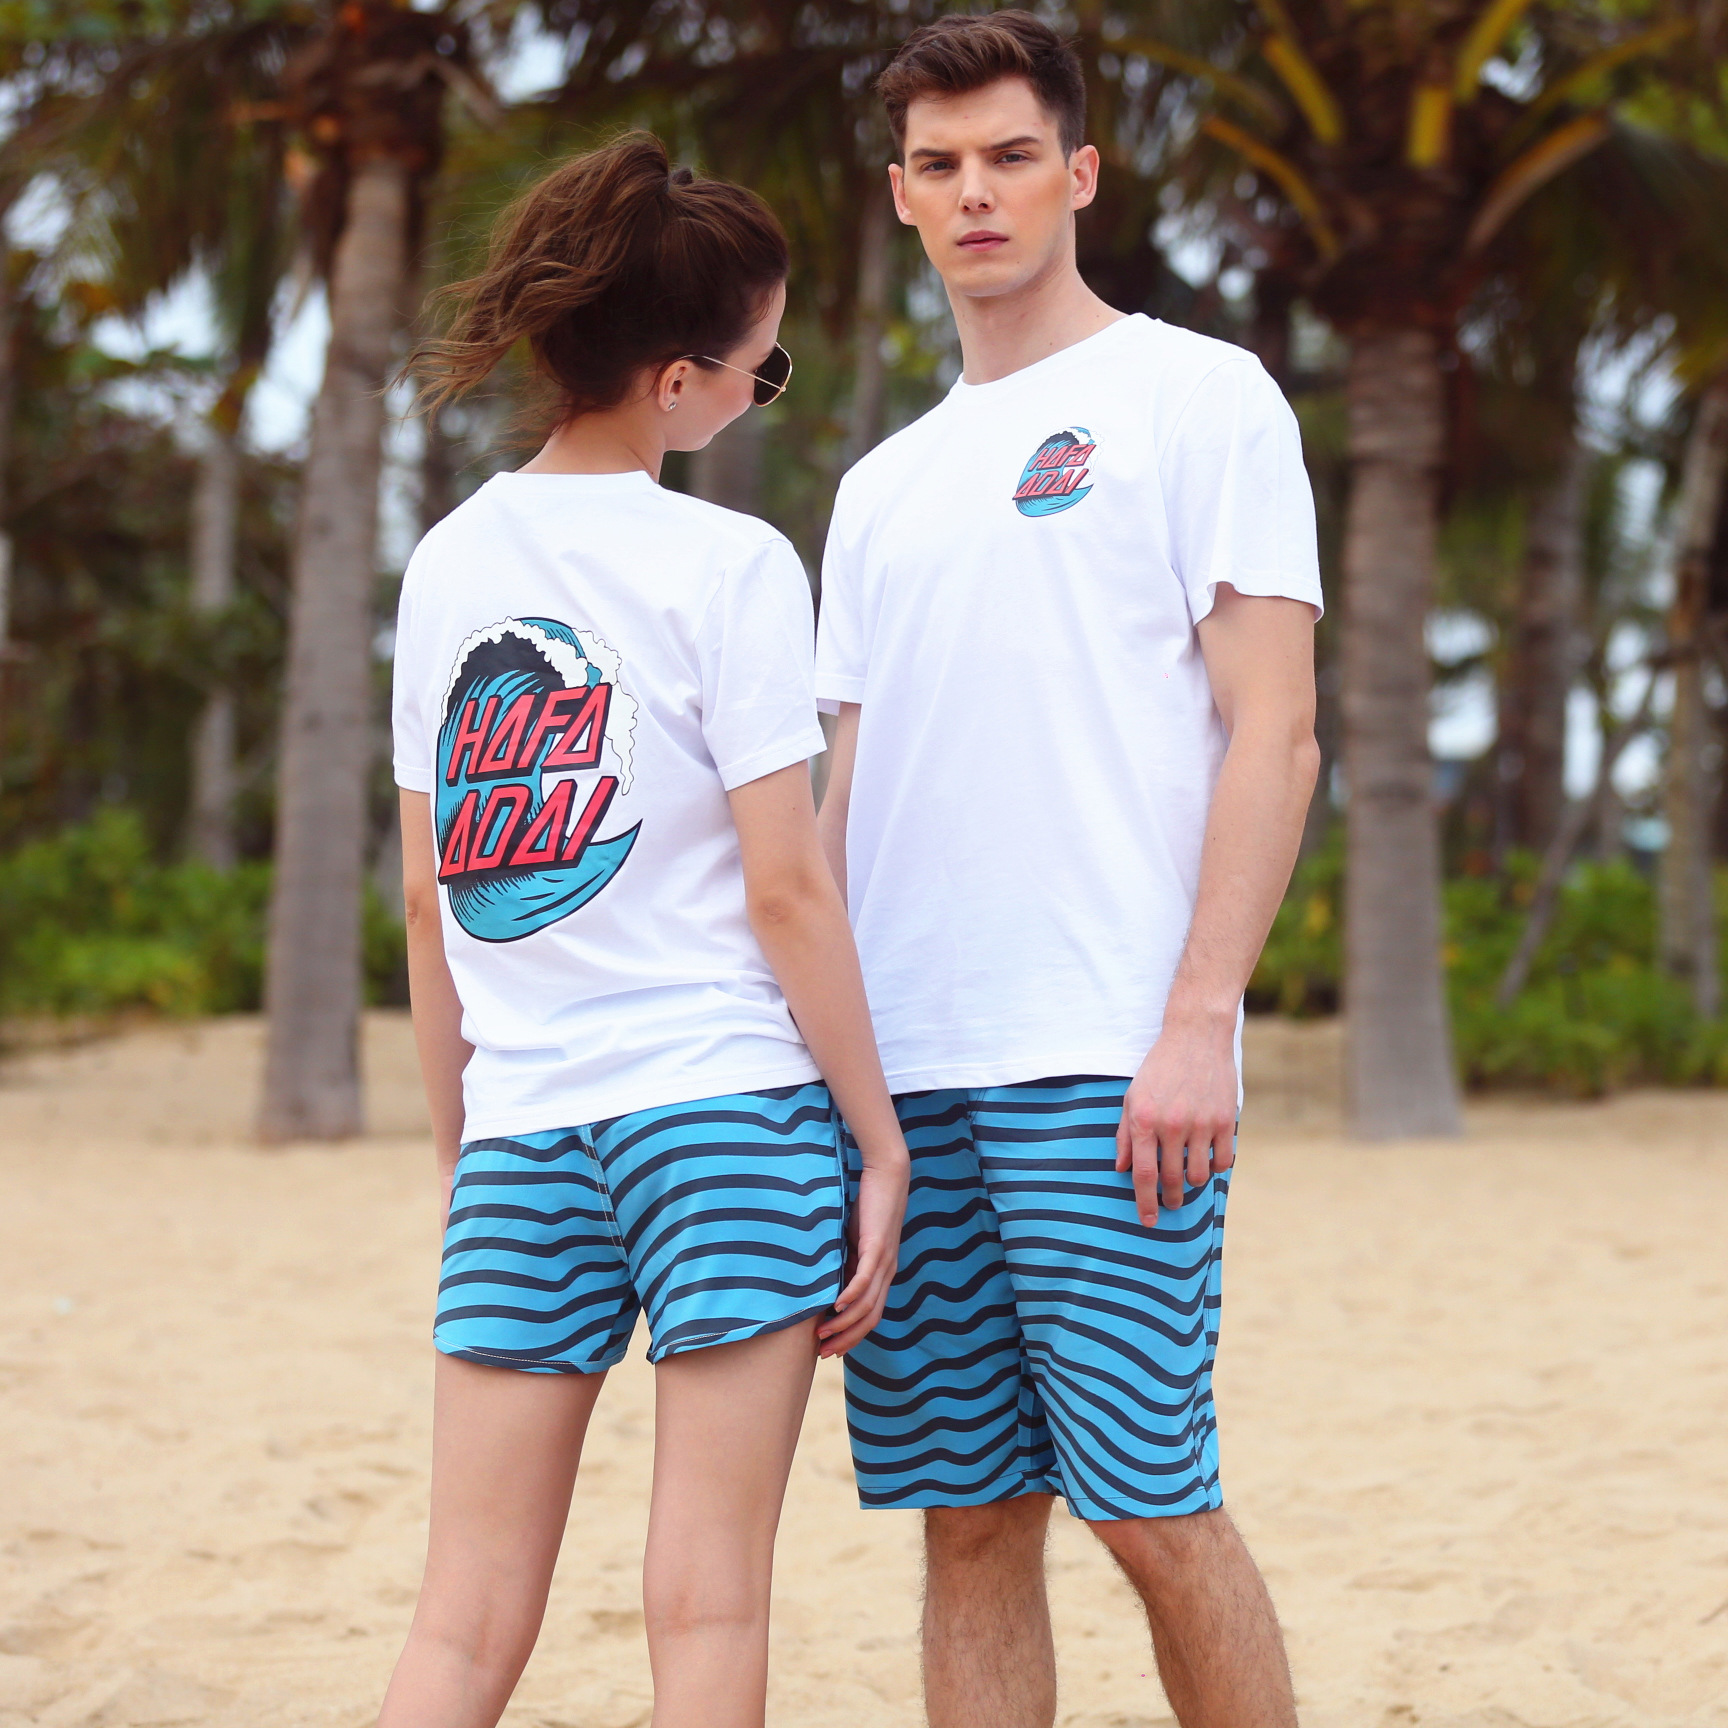 Couples Beach Shorts Quick-Drying Loose Casual Loose-Fit Men's Short Holiday Hot Springs Swimming Lining Shorts